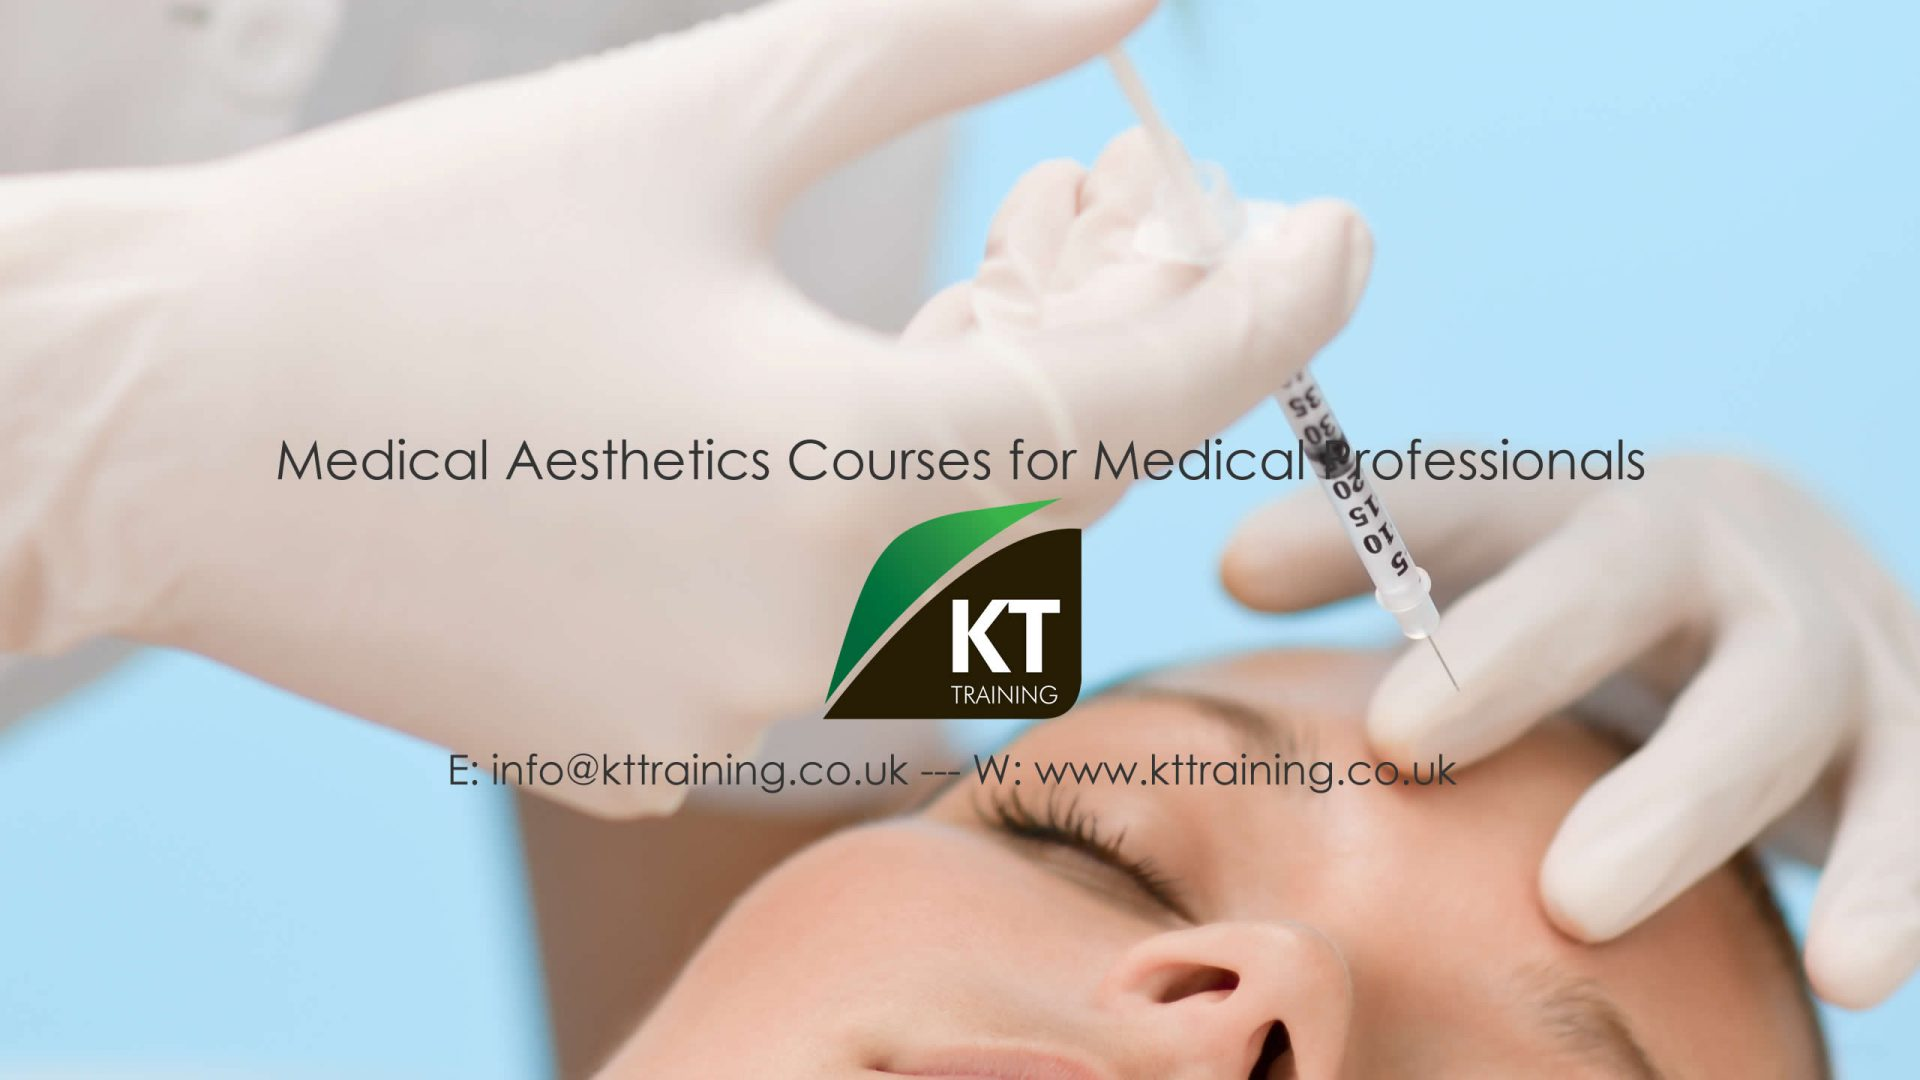 Cosmetic Treatments for Training Courses